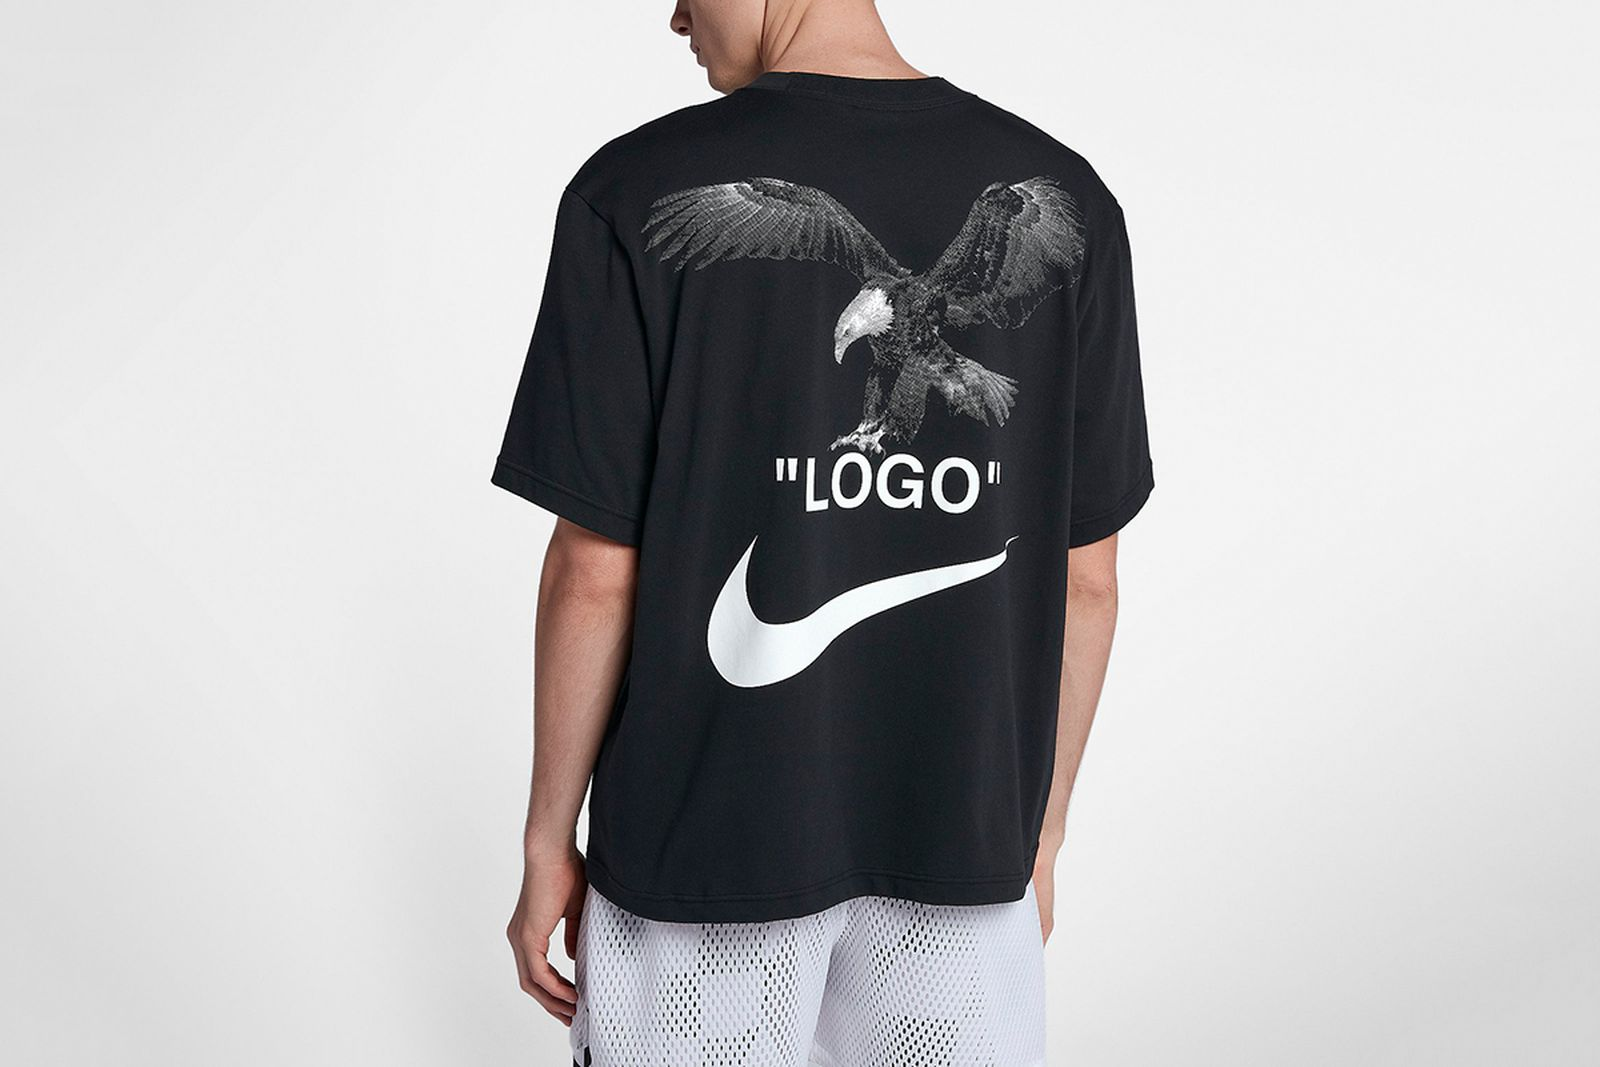 cropped t shirt2 2018 FIFA World Cup Nike OFF-WHITE c/o Virgil Abloh